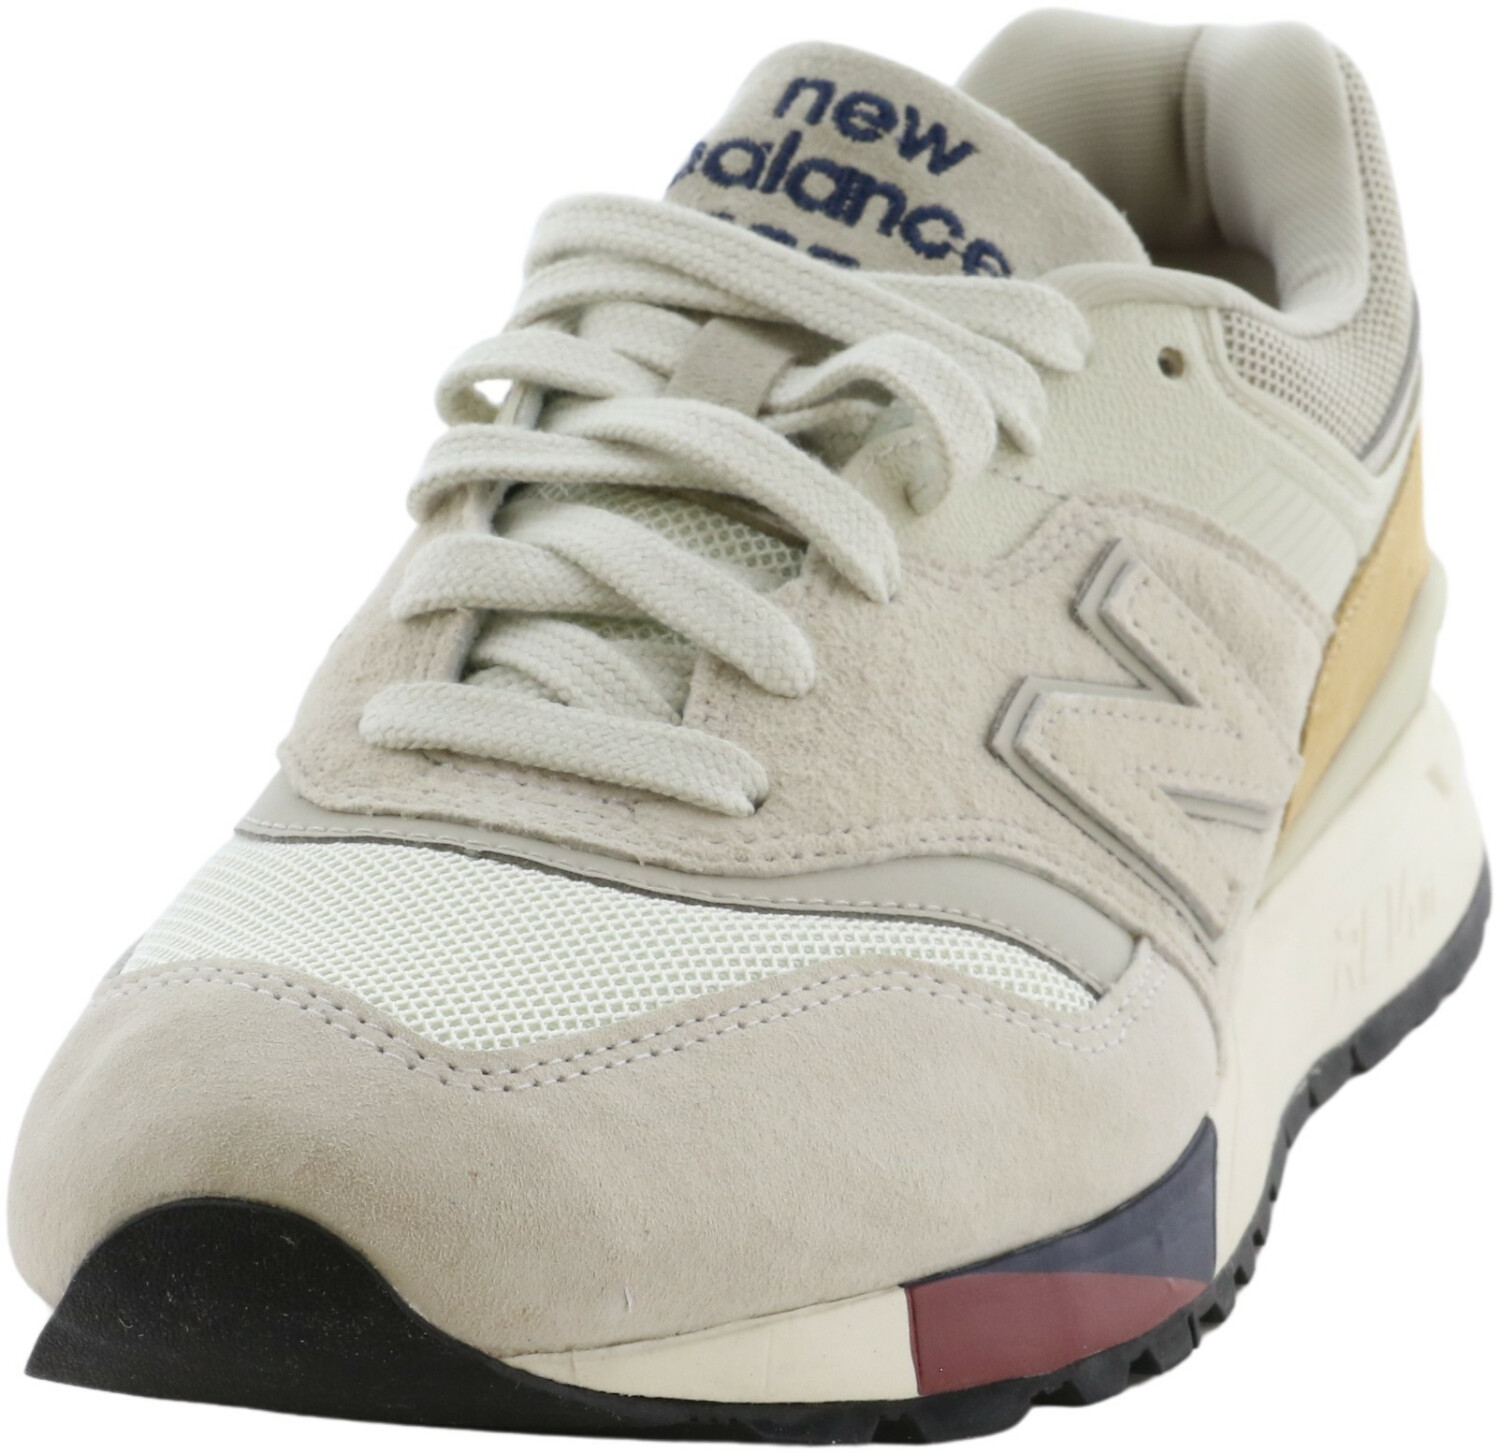 New Balance Men's Ml997 Hcb Mid-Top Leather Running - 9.5M